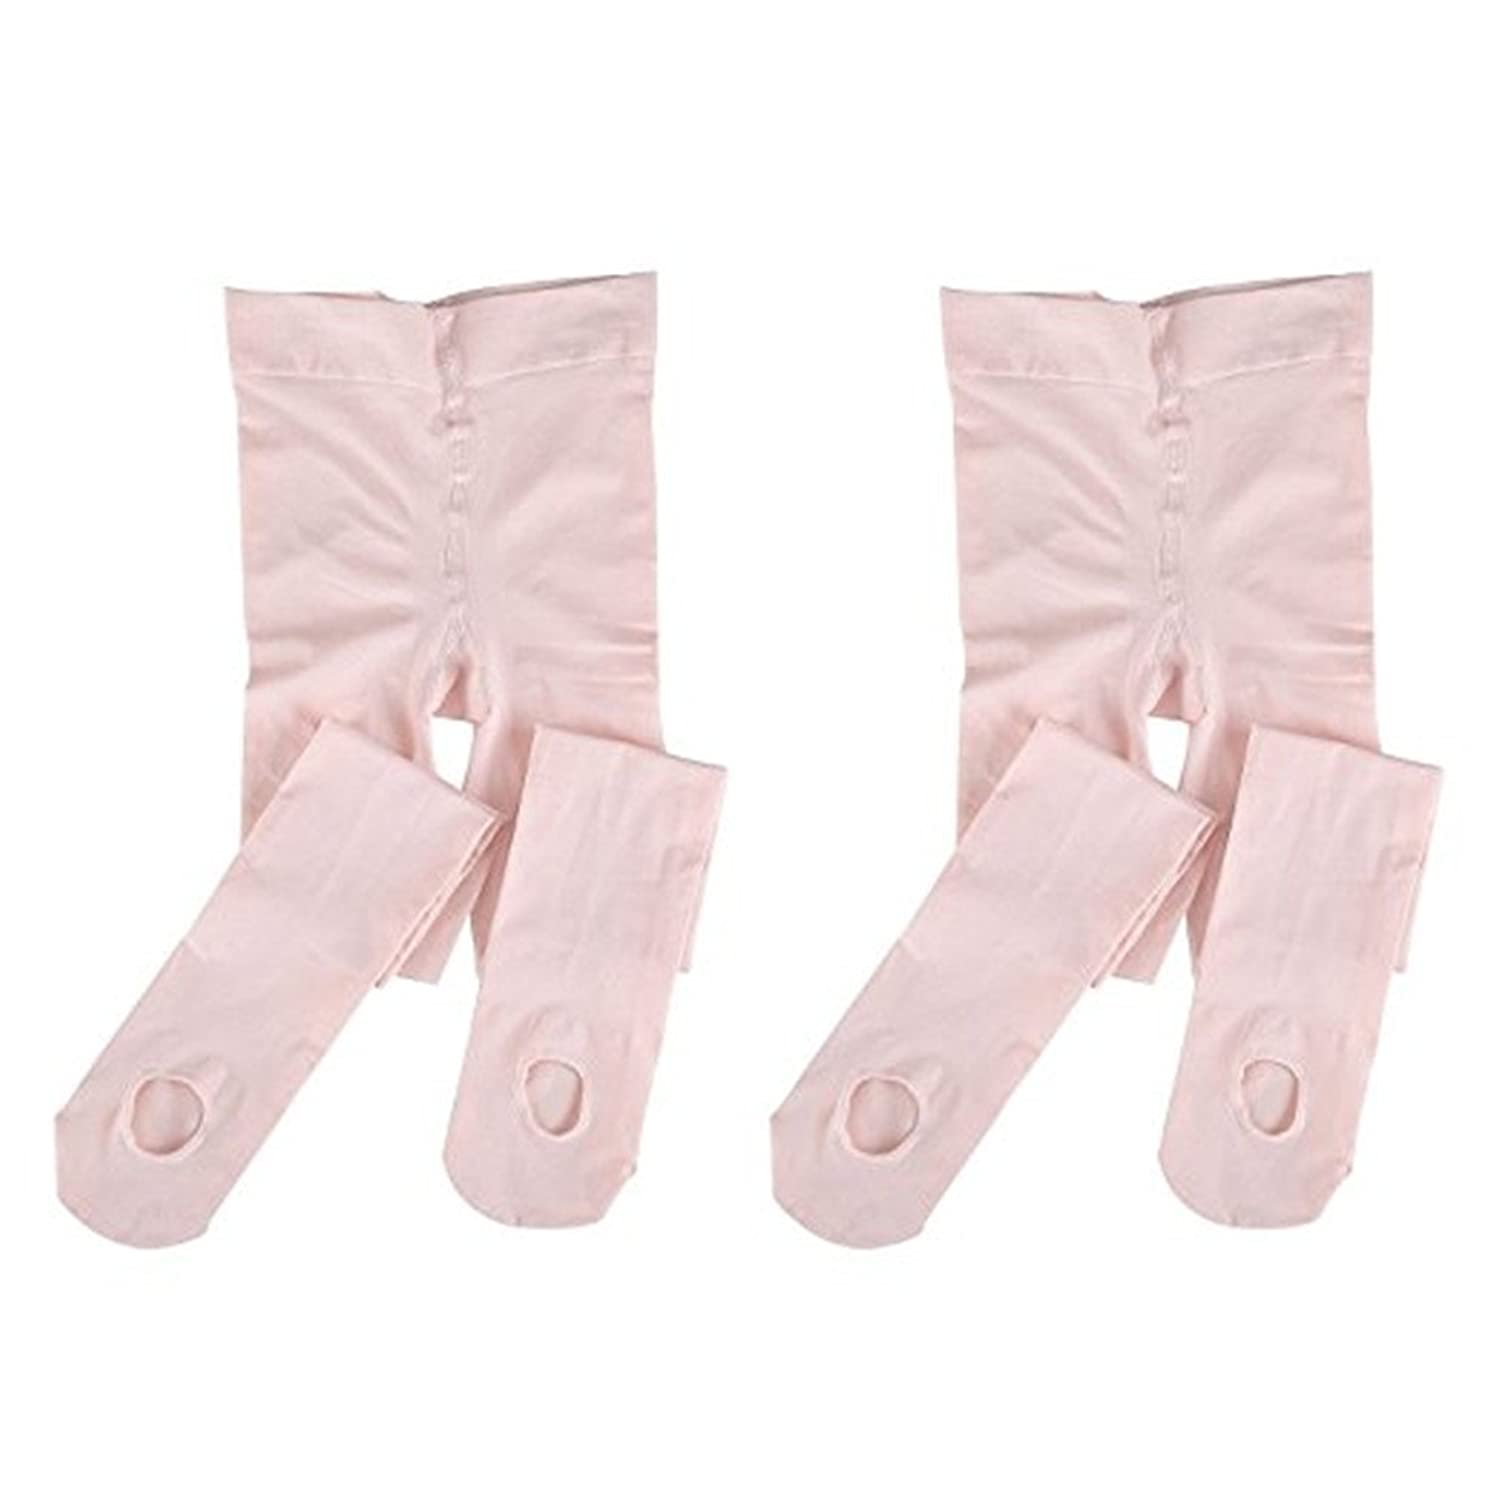 2 Pairs Girls Soft Ballet Dance Tights with Stretch for Women